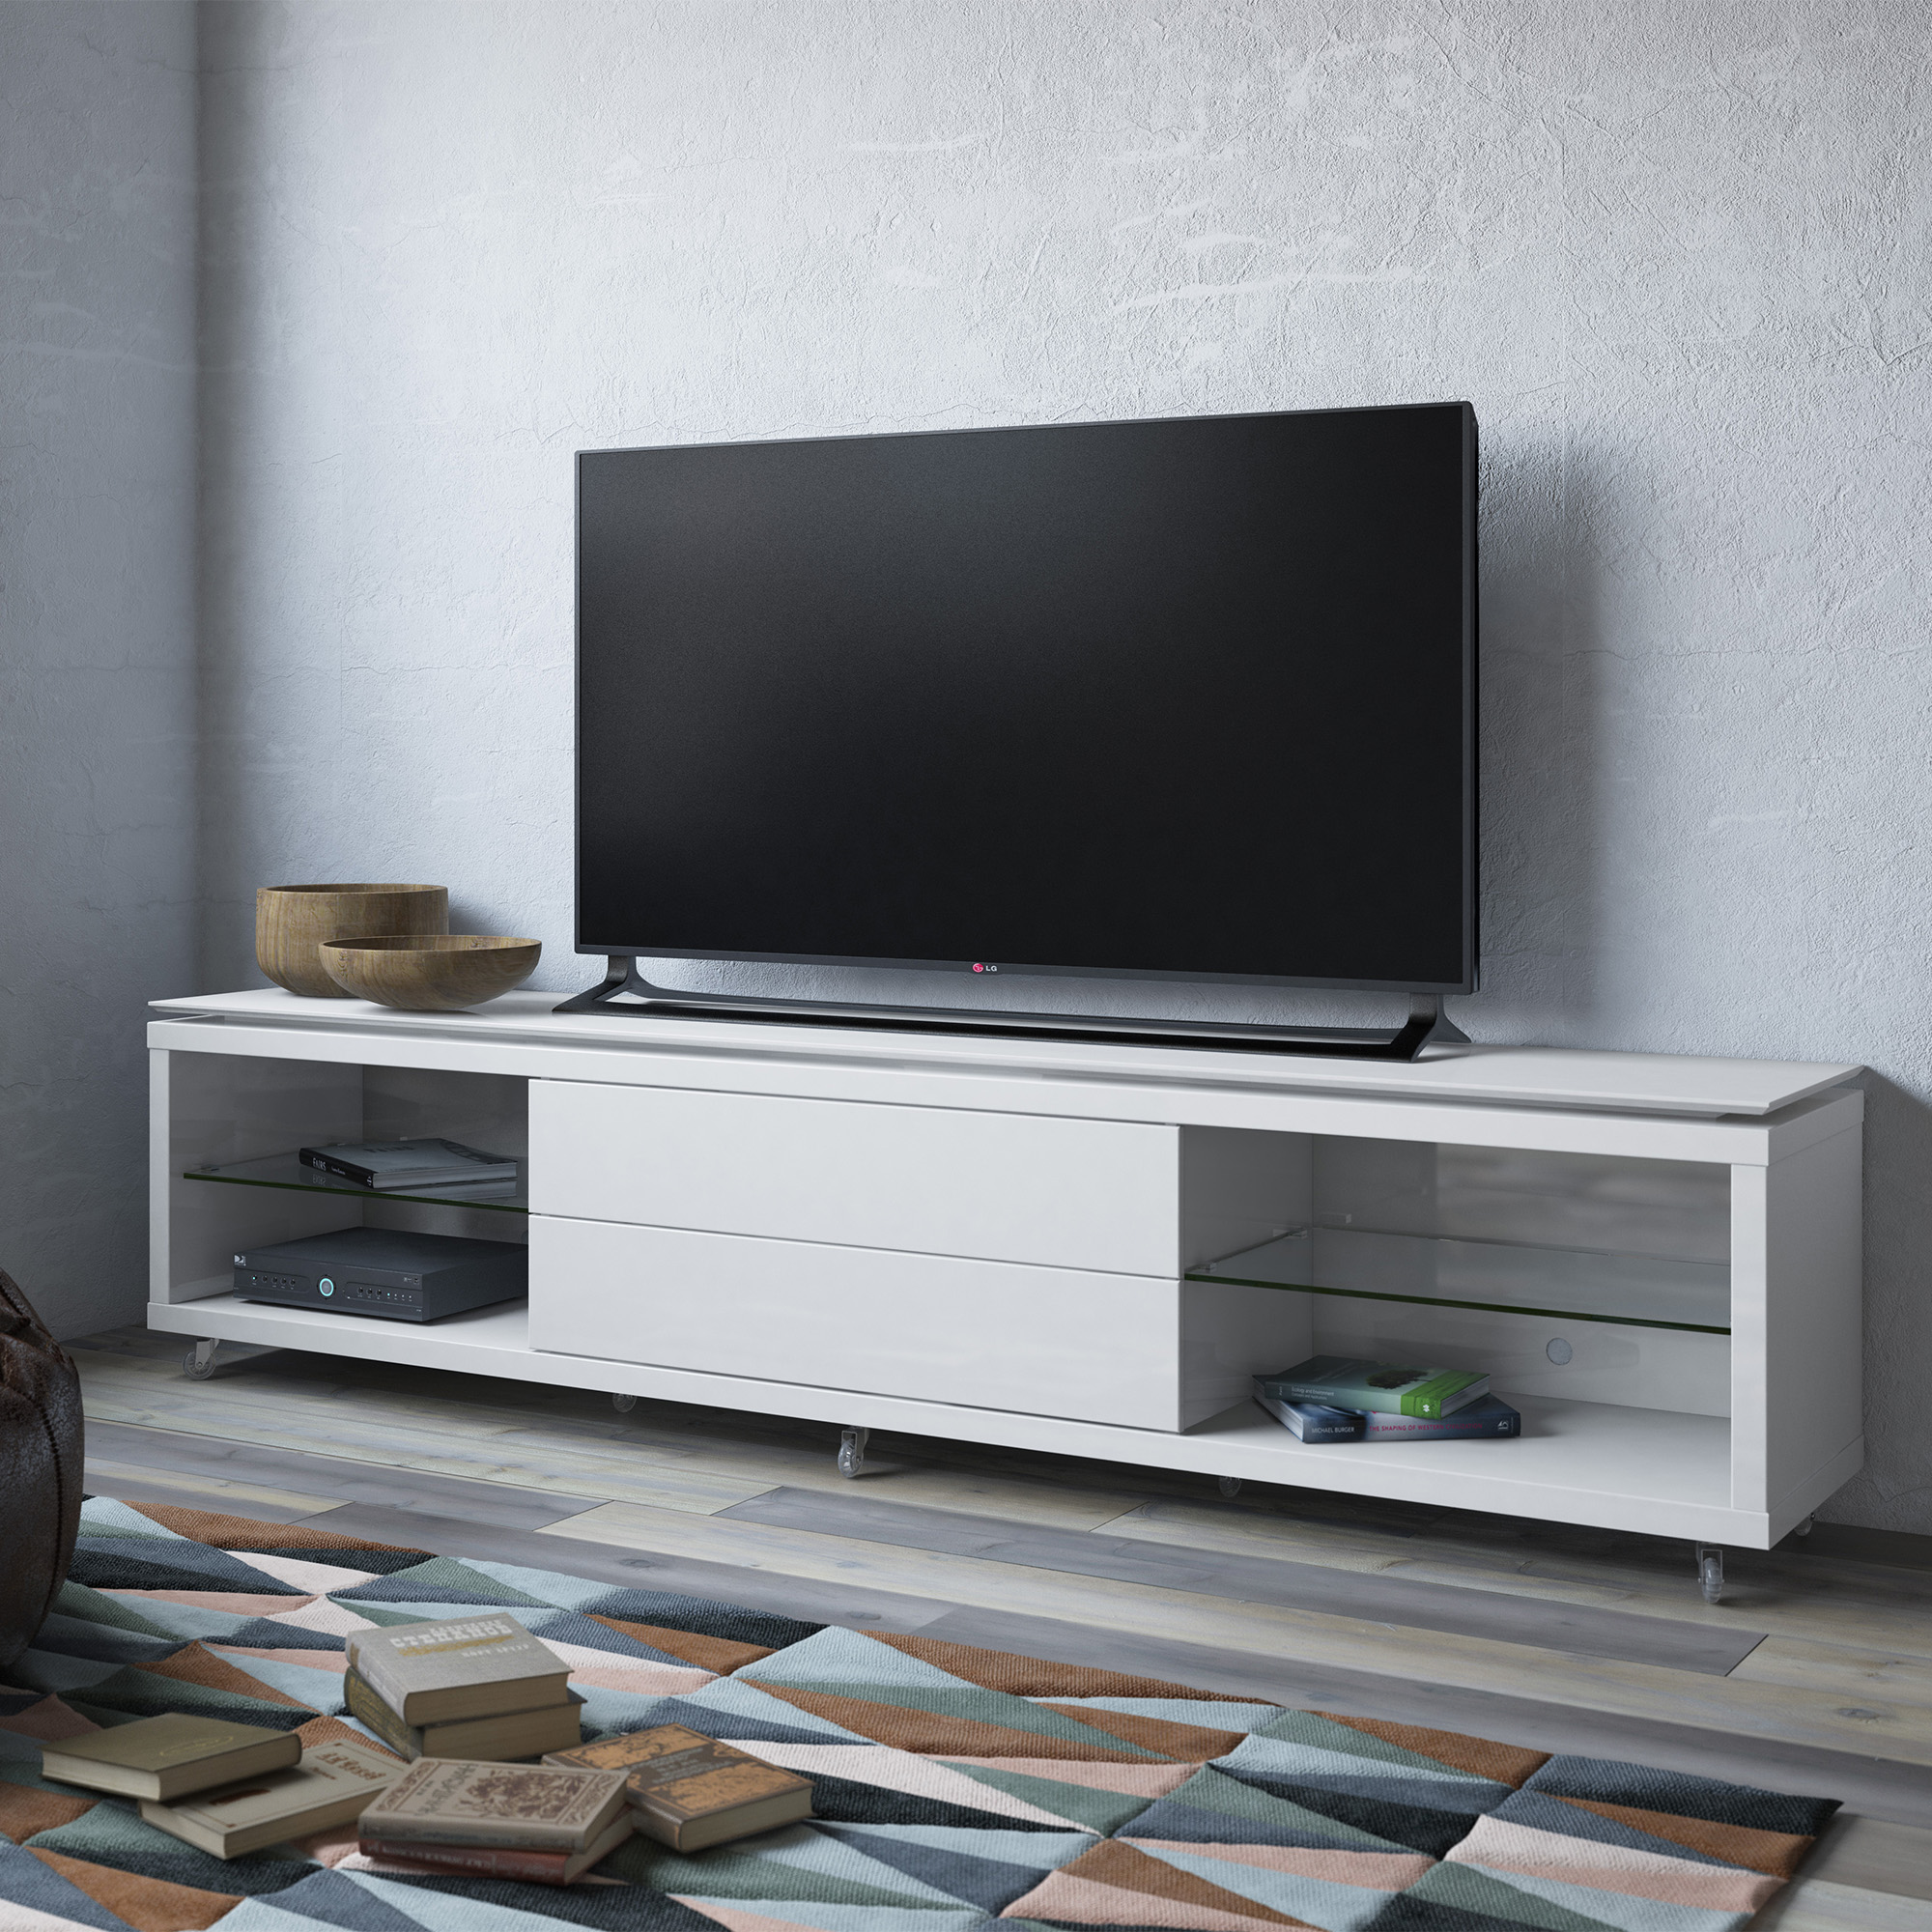 lincoln white gloss tv stand wsilicon casters  by manhattan  - lincoln white gloss tv stand wsilicon casters  by manhattan comfort